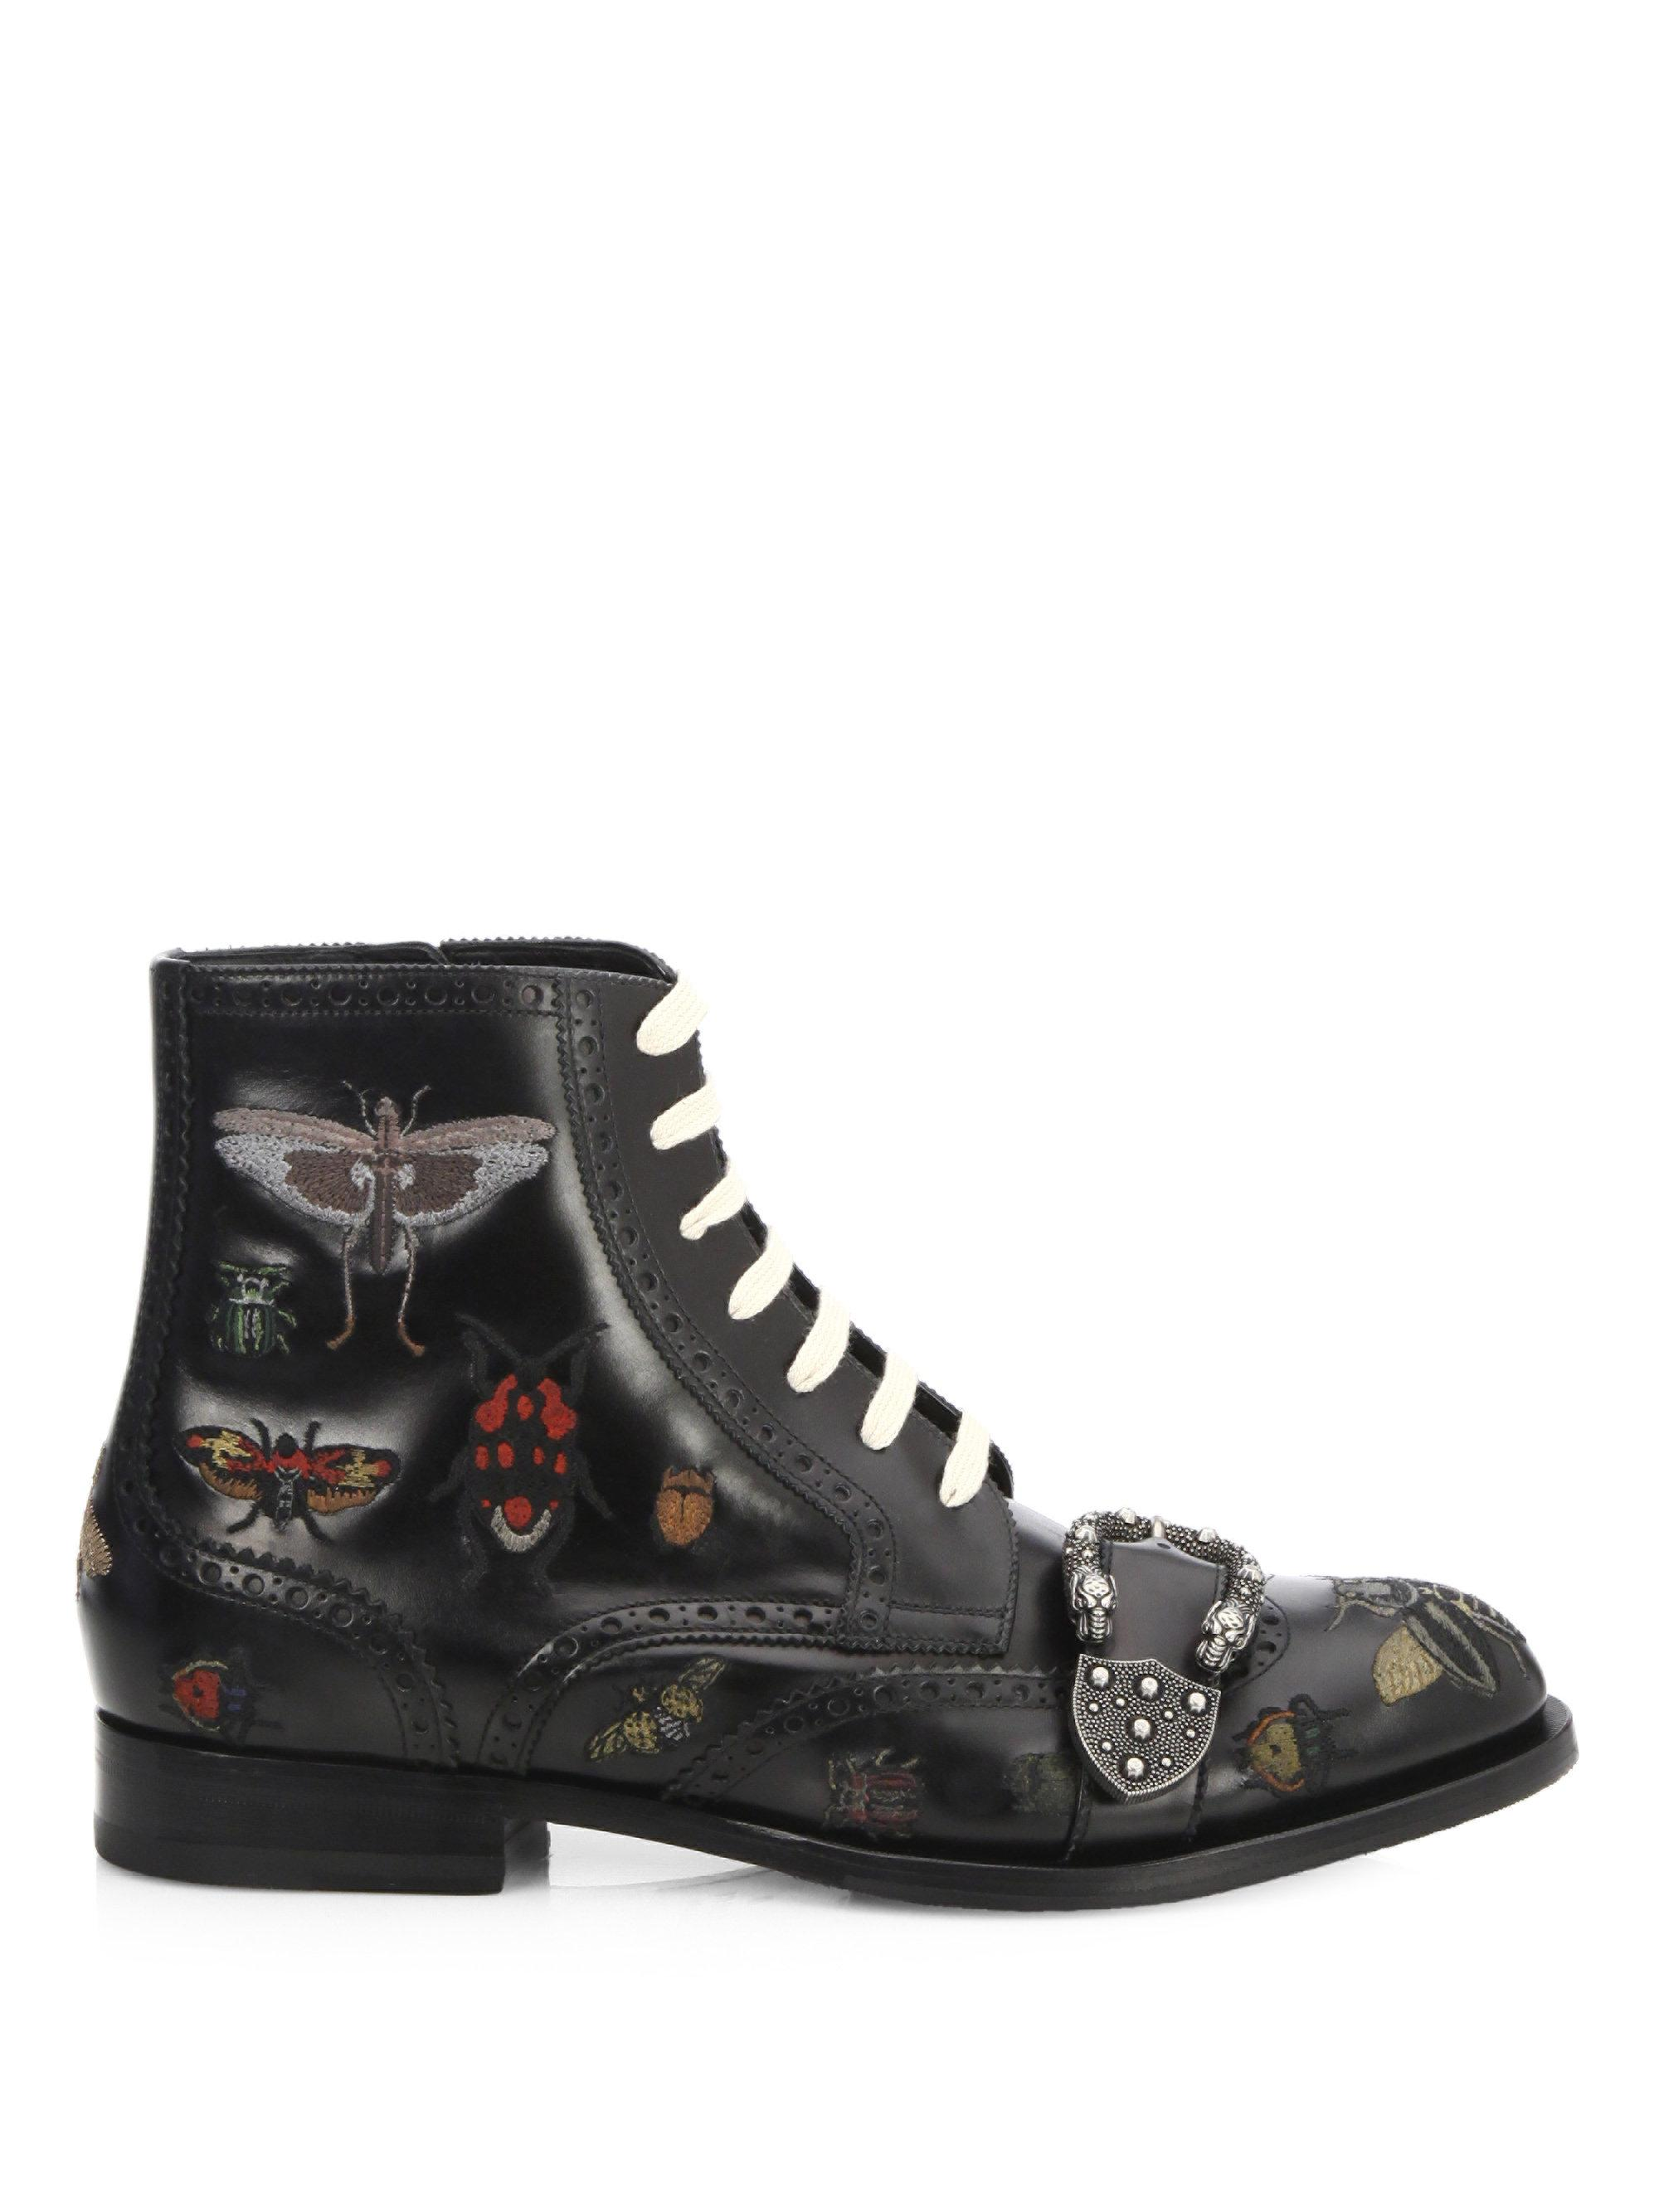 aaed60bec Gucci Queercore Insects Leather Boots in Black - Lyst